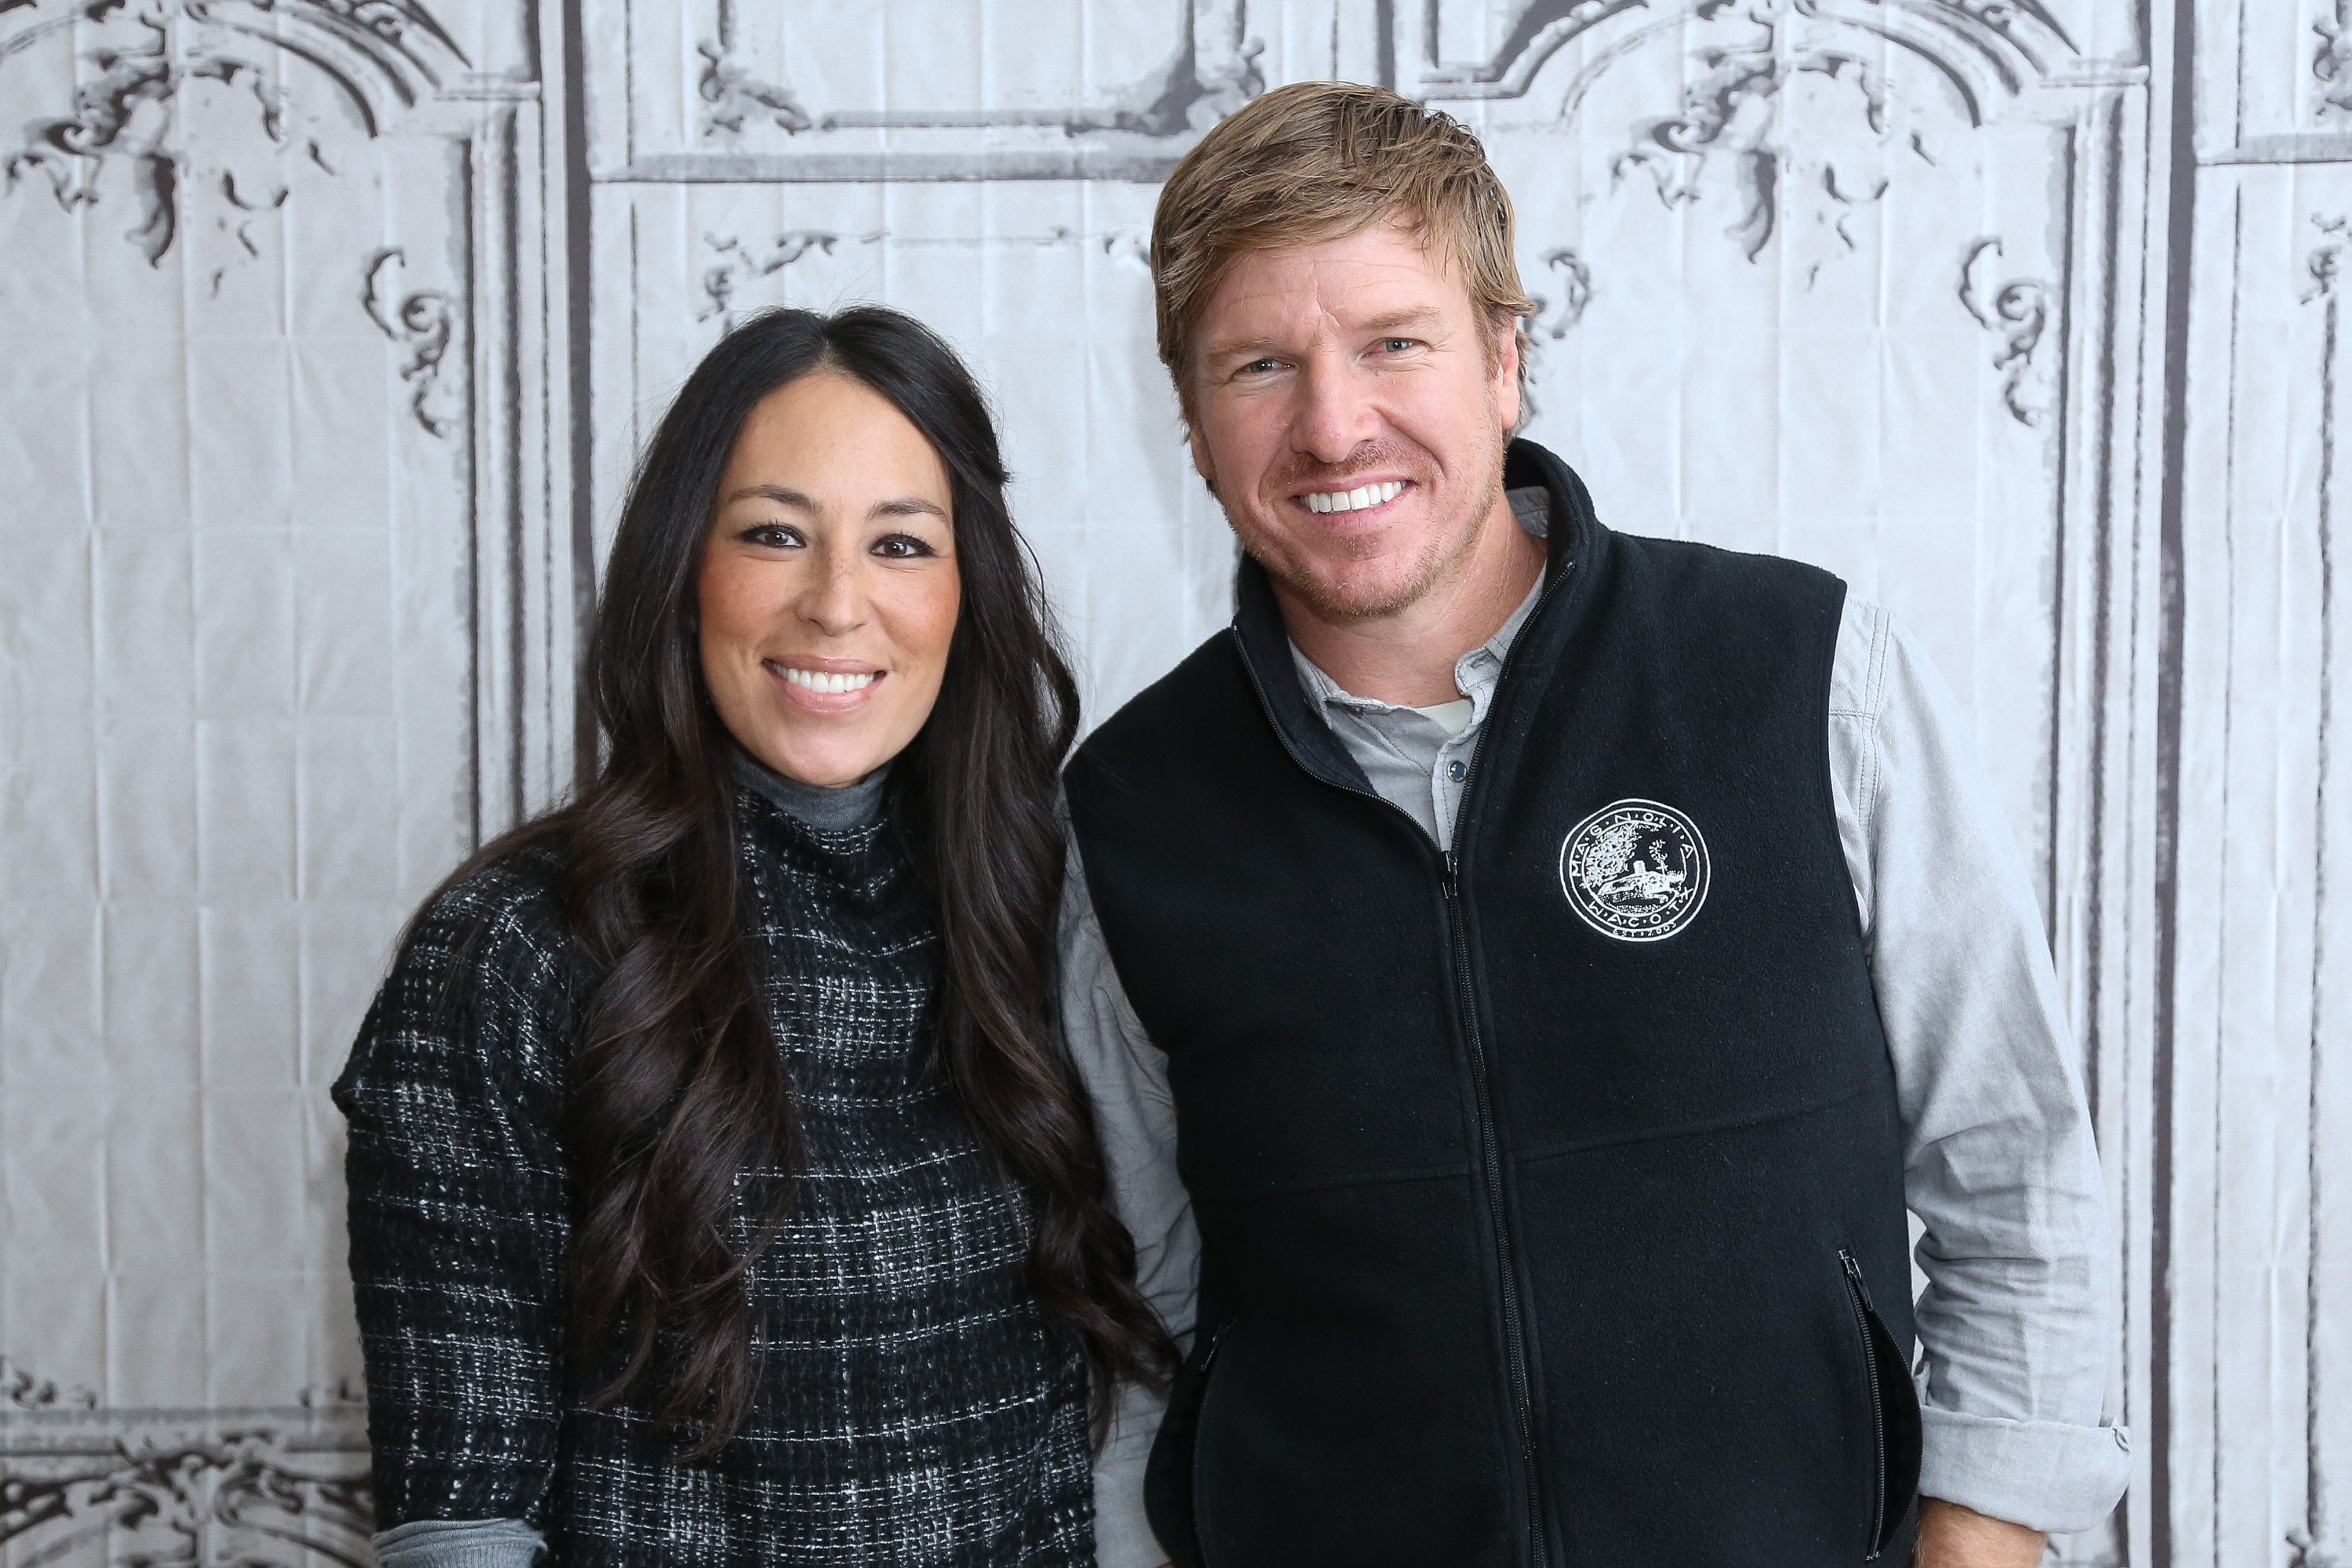 """Chip Gaines and Joanna Gaines attend AOL Build Presents: """"Fixer Upper"""" at AOL Studios In New York on December 8, 2015 in New York City   Photo: Getty Images"""